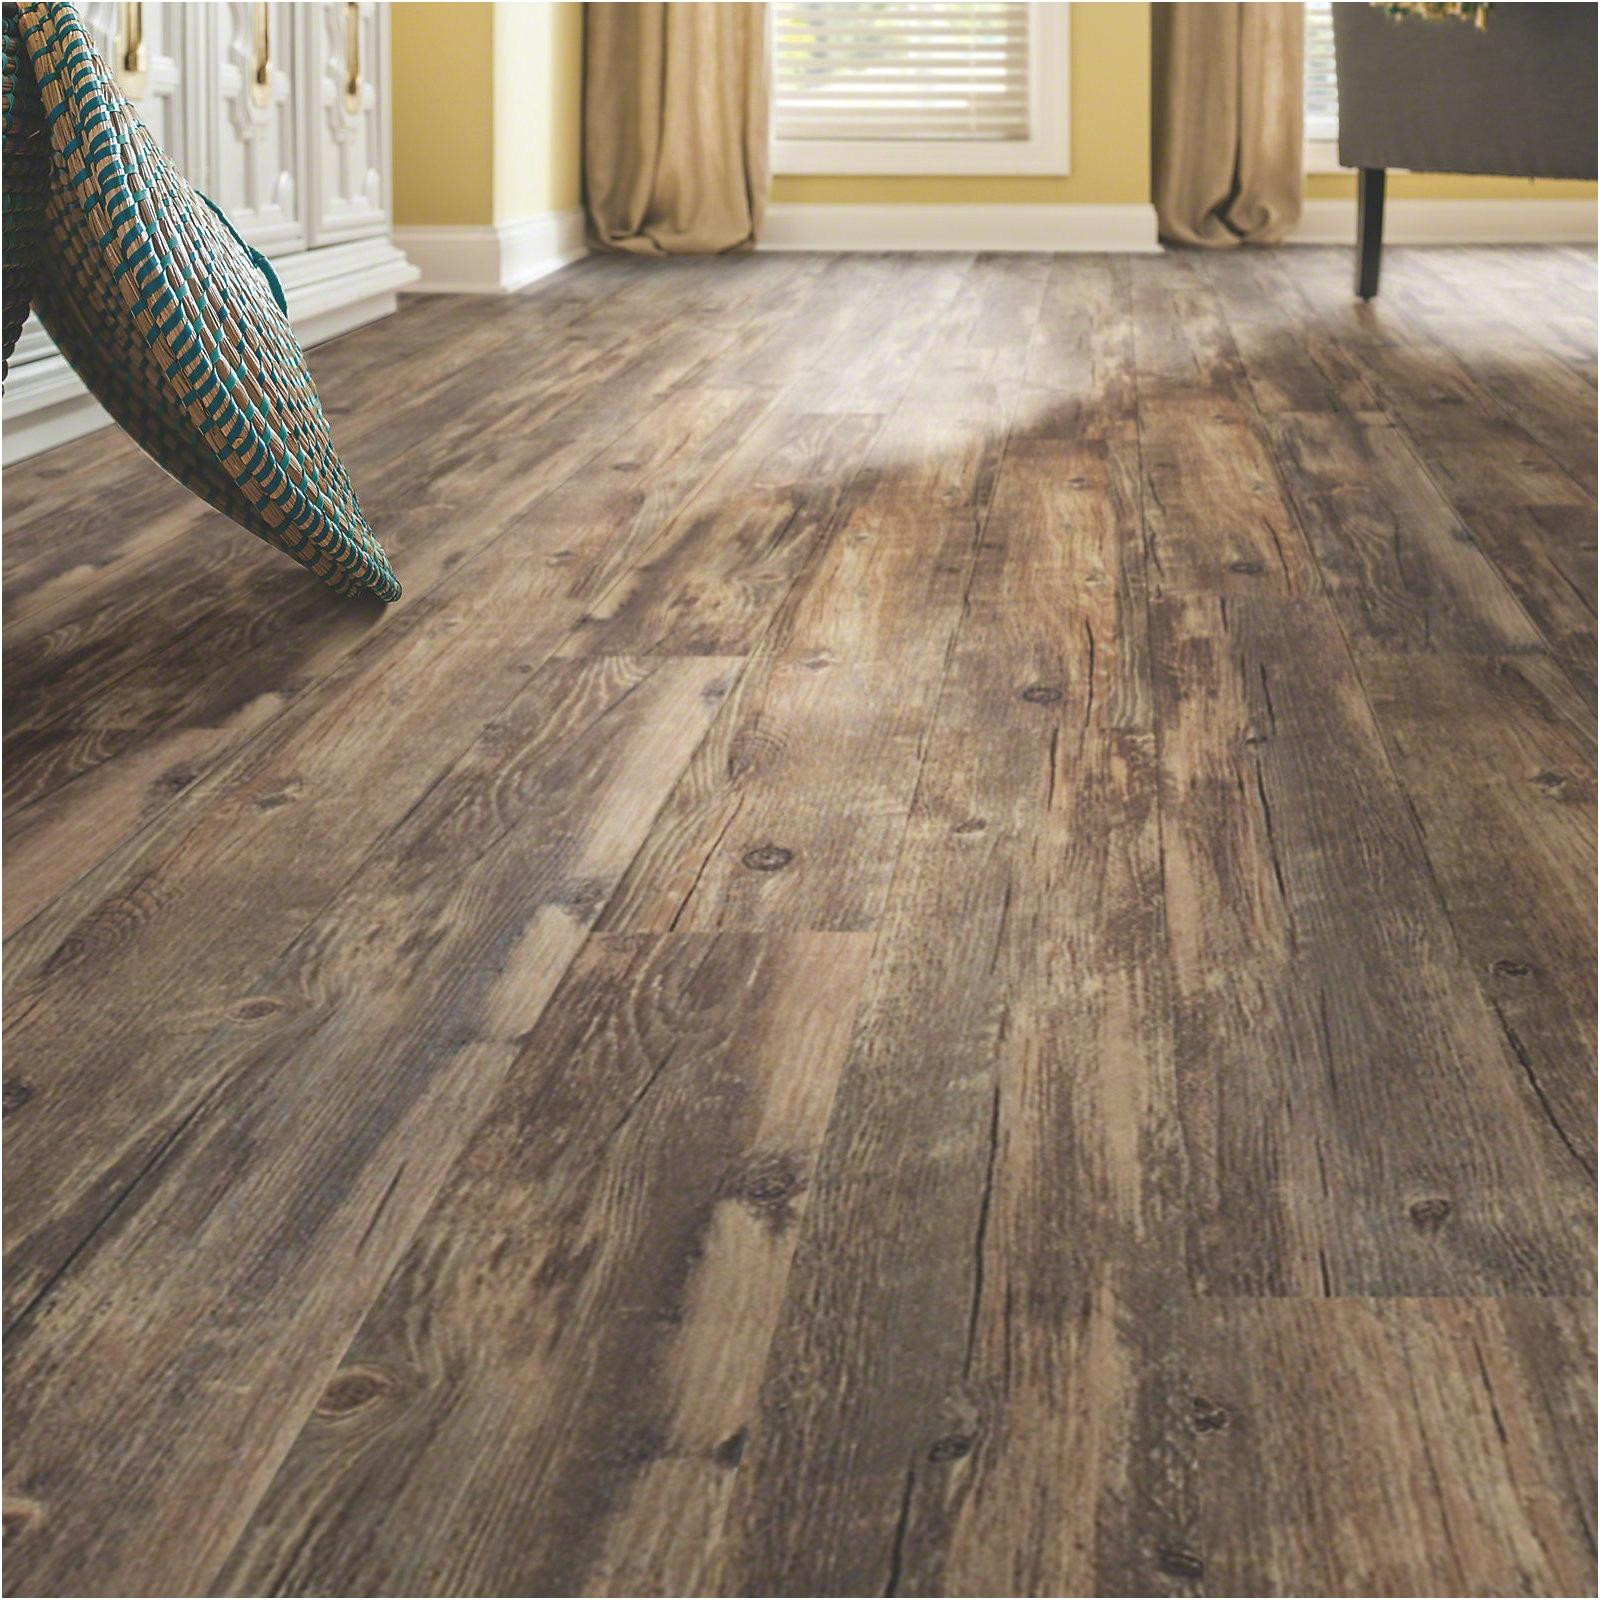 hardwood tile flooring reviews of vinyl plank floor home design vinyl plank flooring reviews awesome for vinyl plank floor home design vinyl plank flooring reviews awesome new decorating an